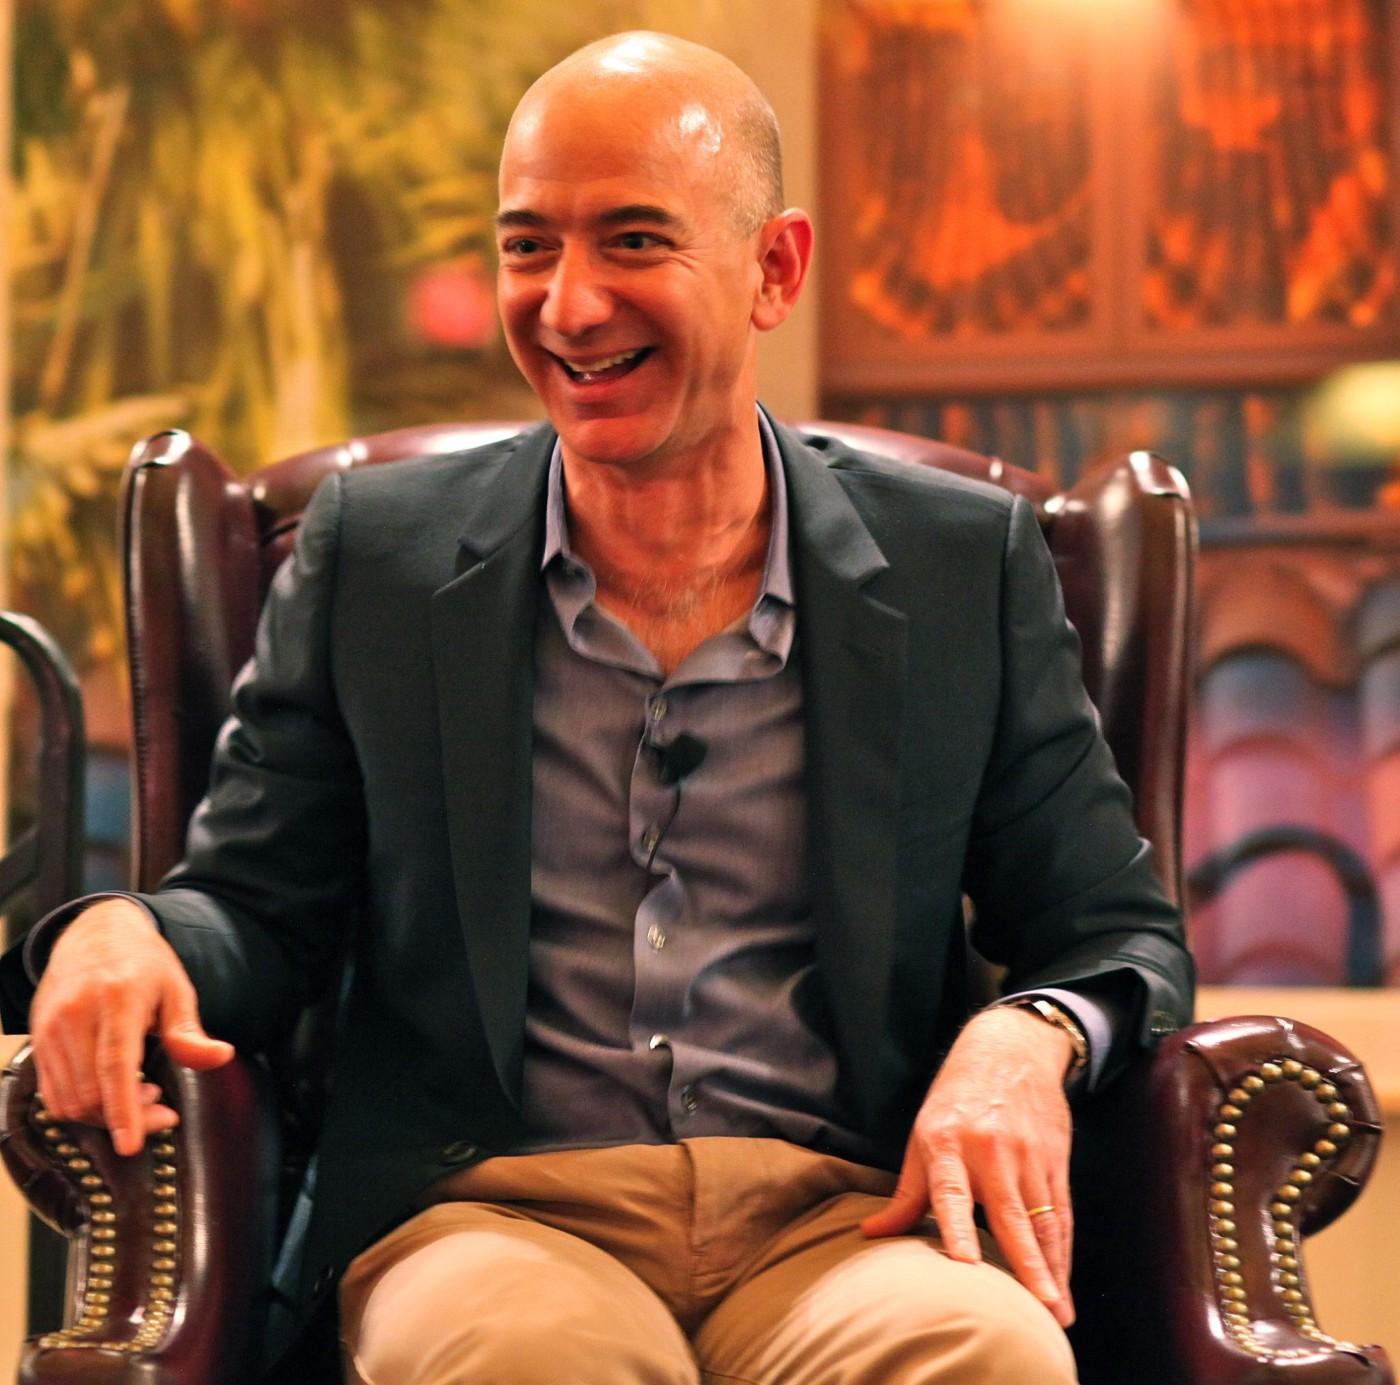 Jeff Bezos laughing while sitting in a leather chair